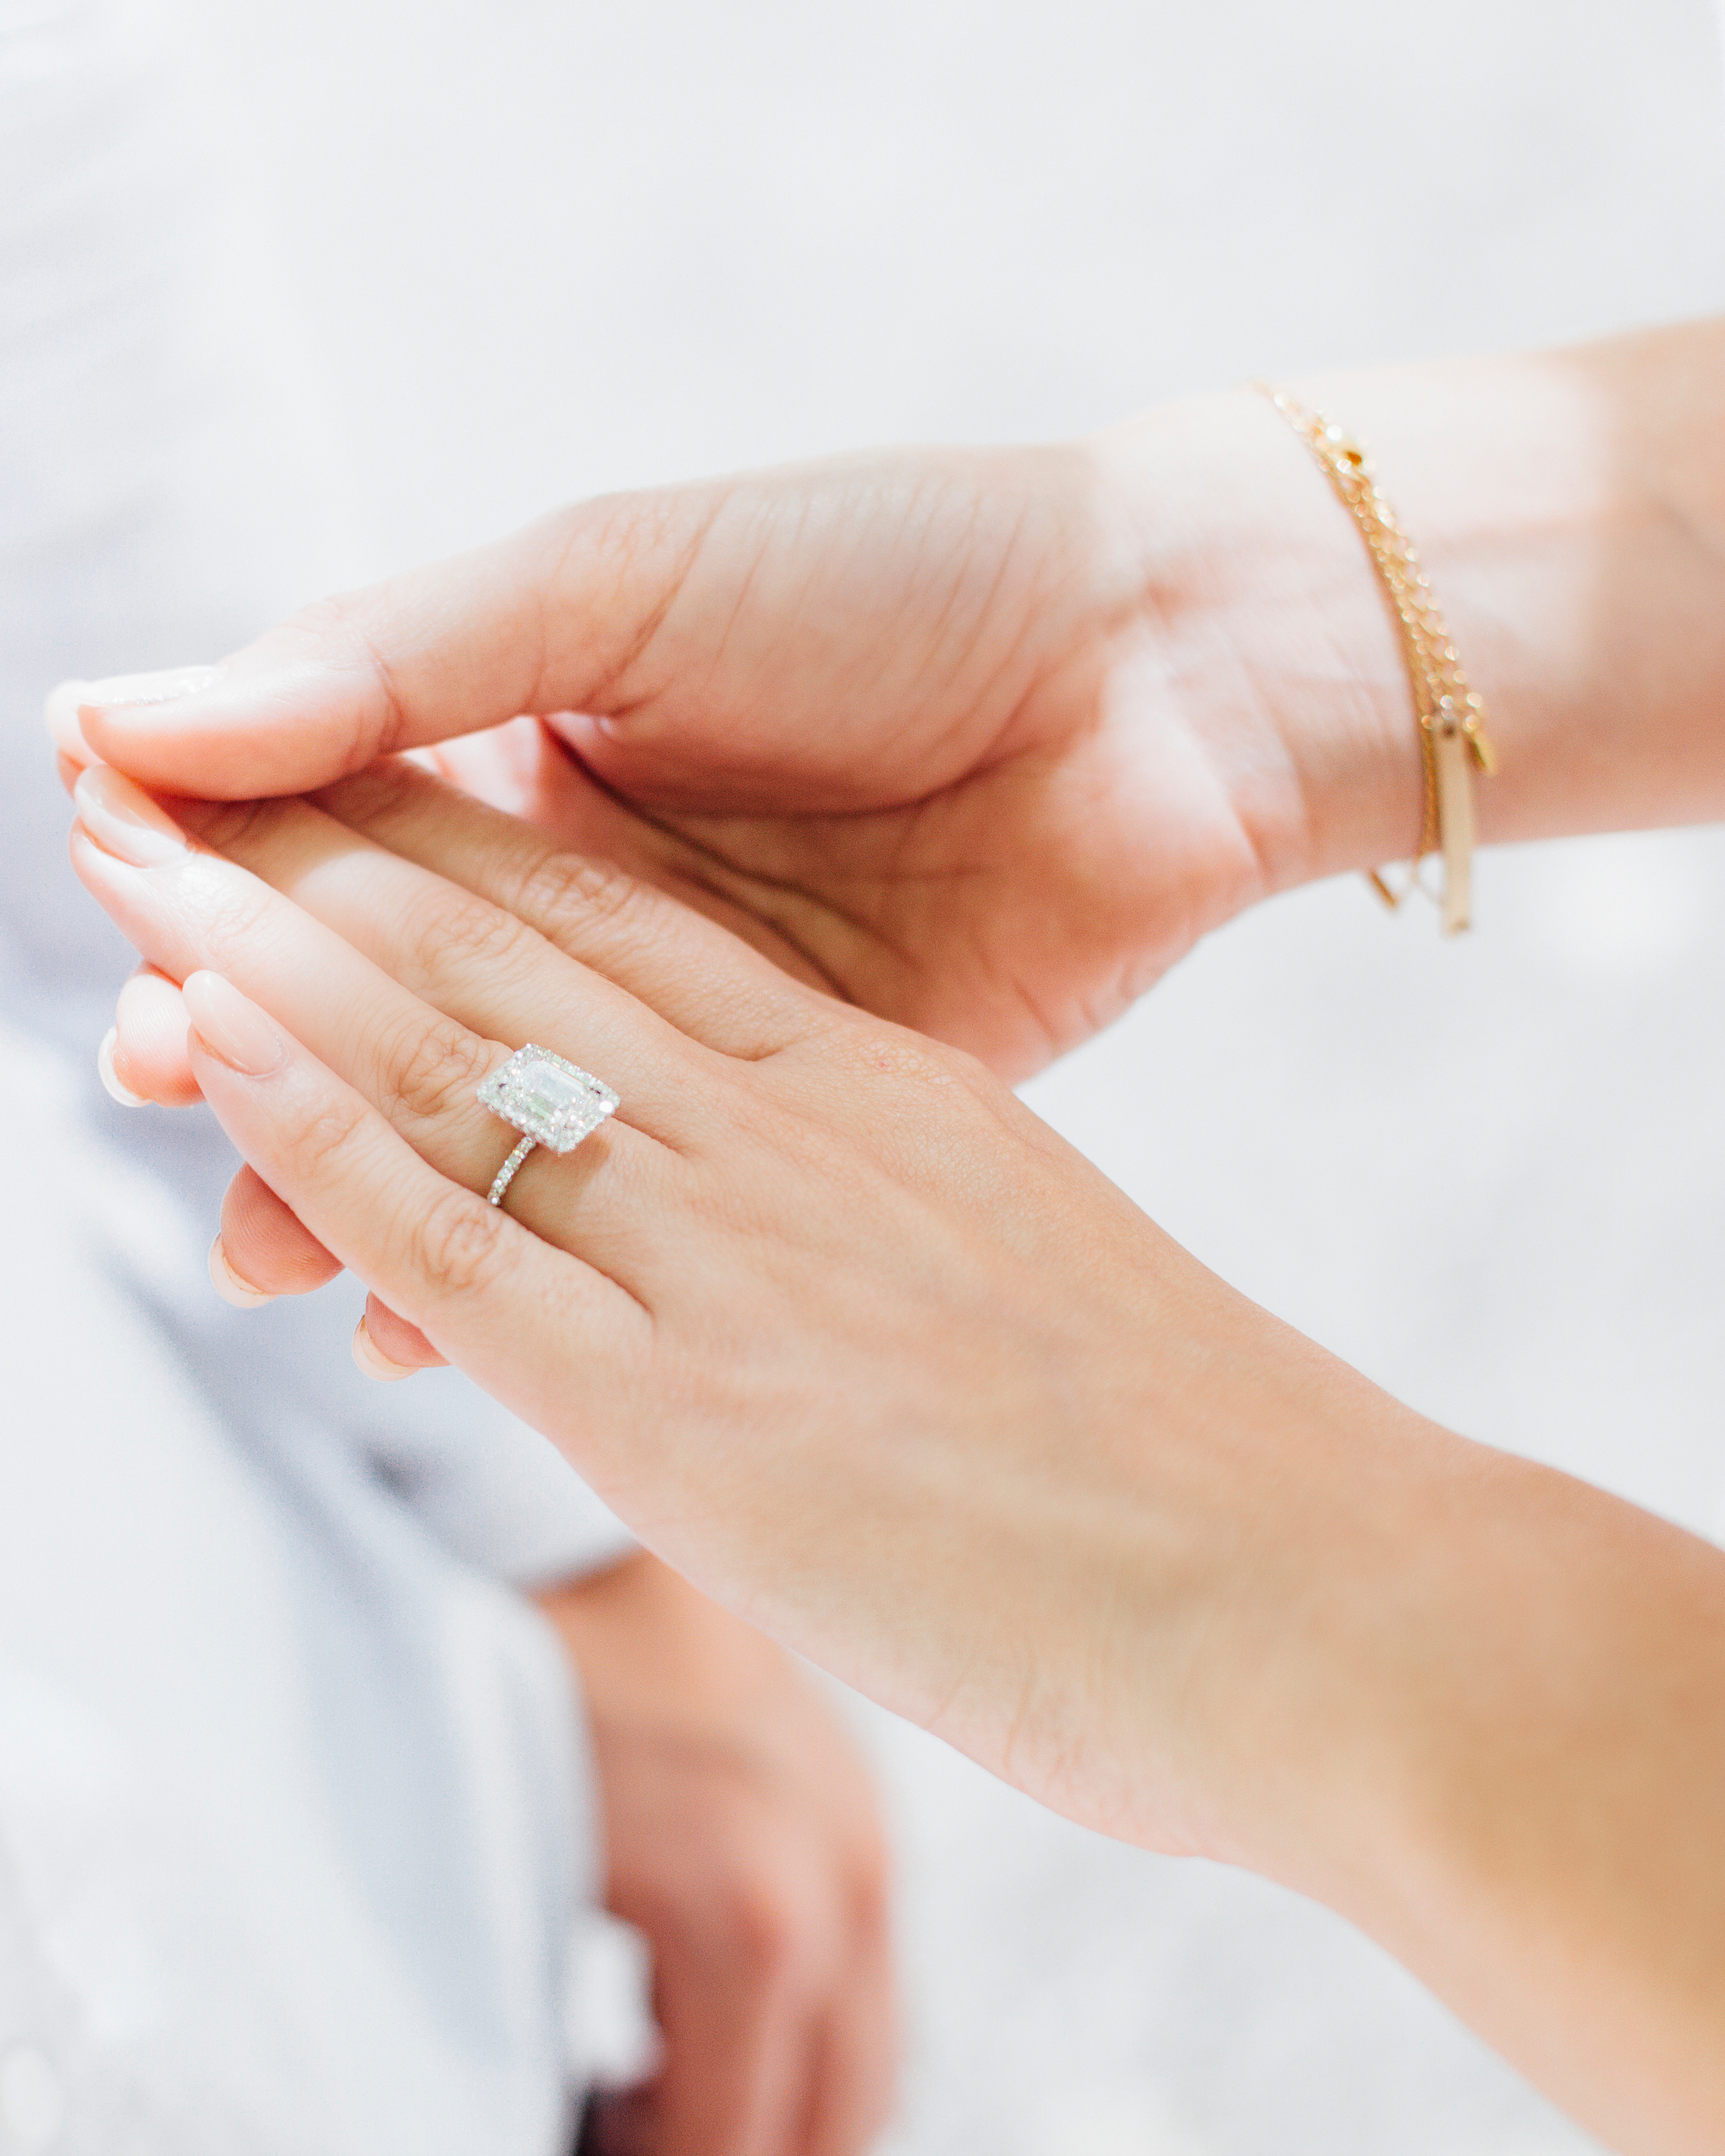 How to Plan the Perfect Proposal, According to Your Partner's Astrological Sign